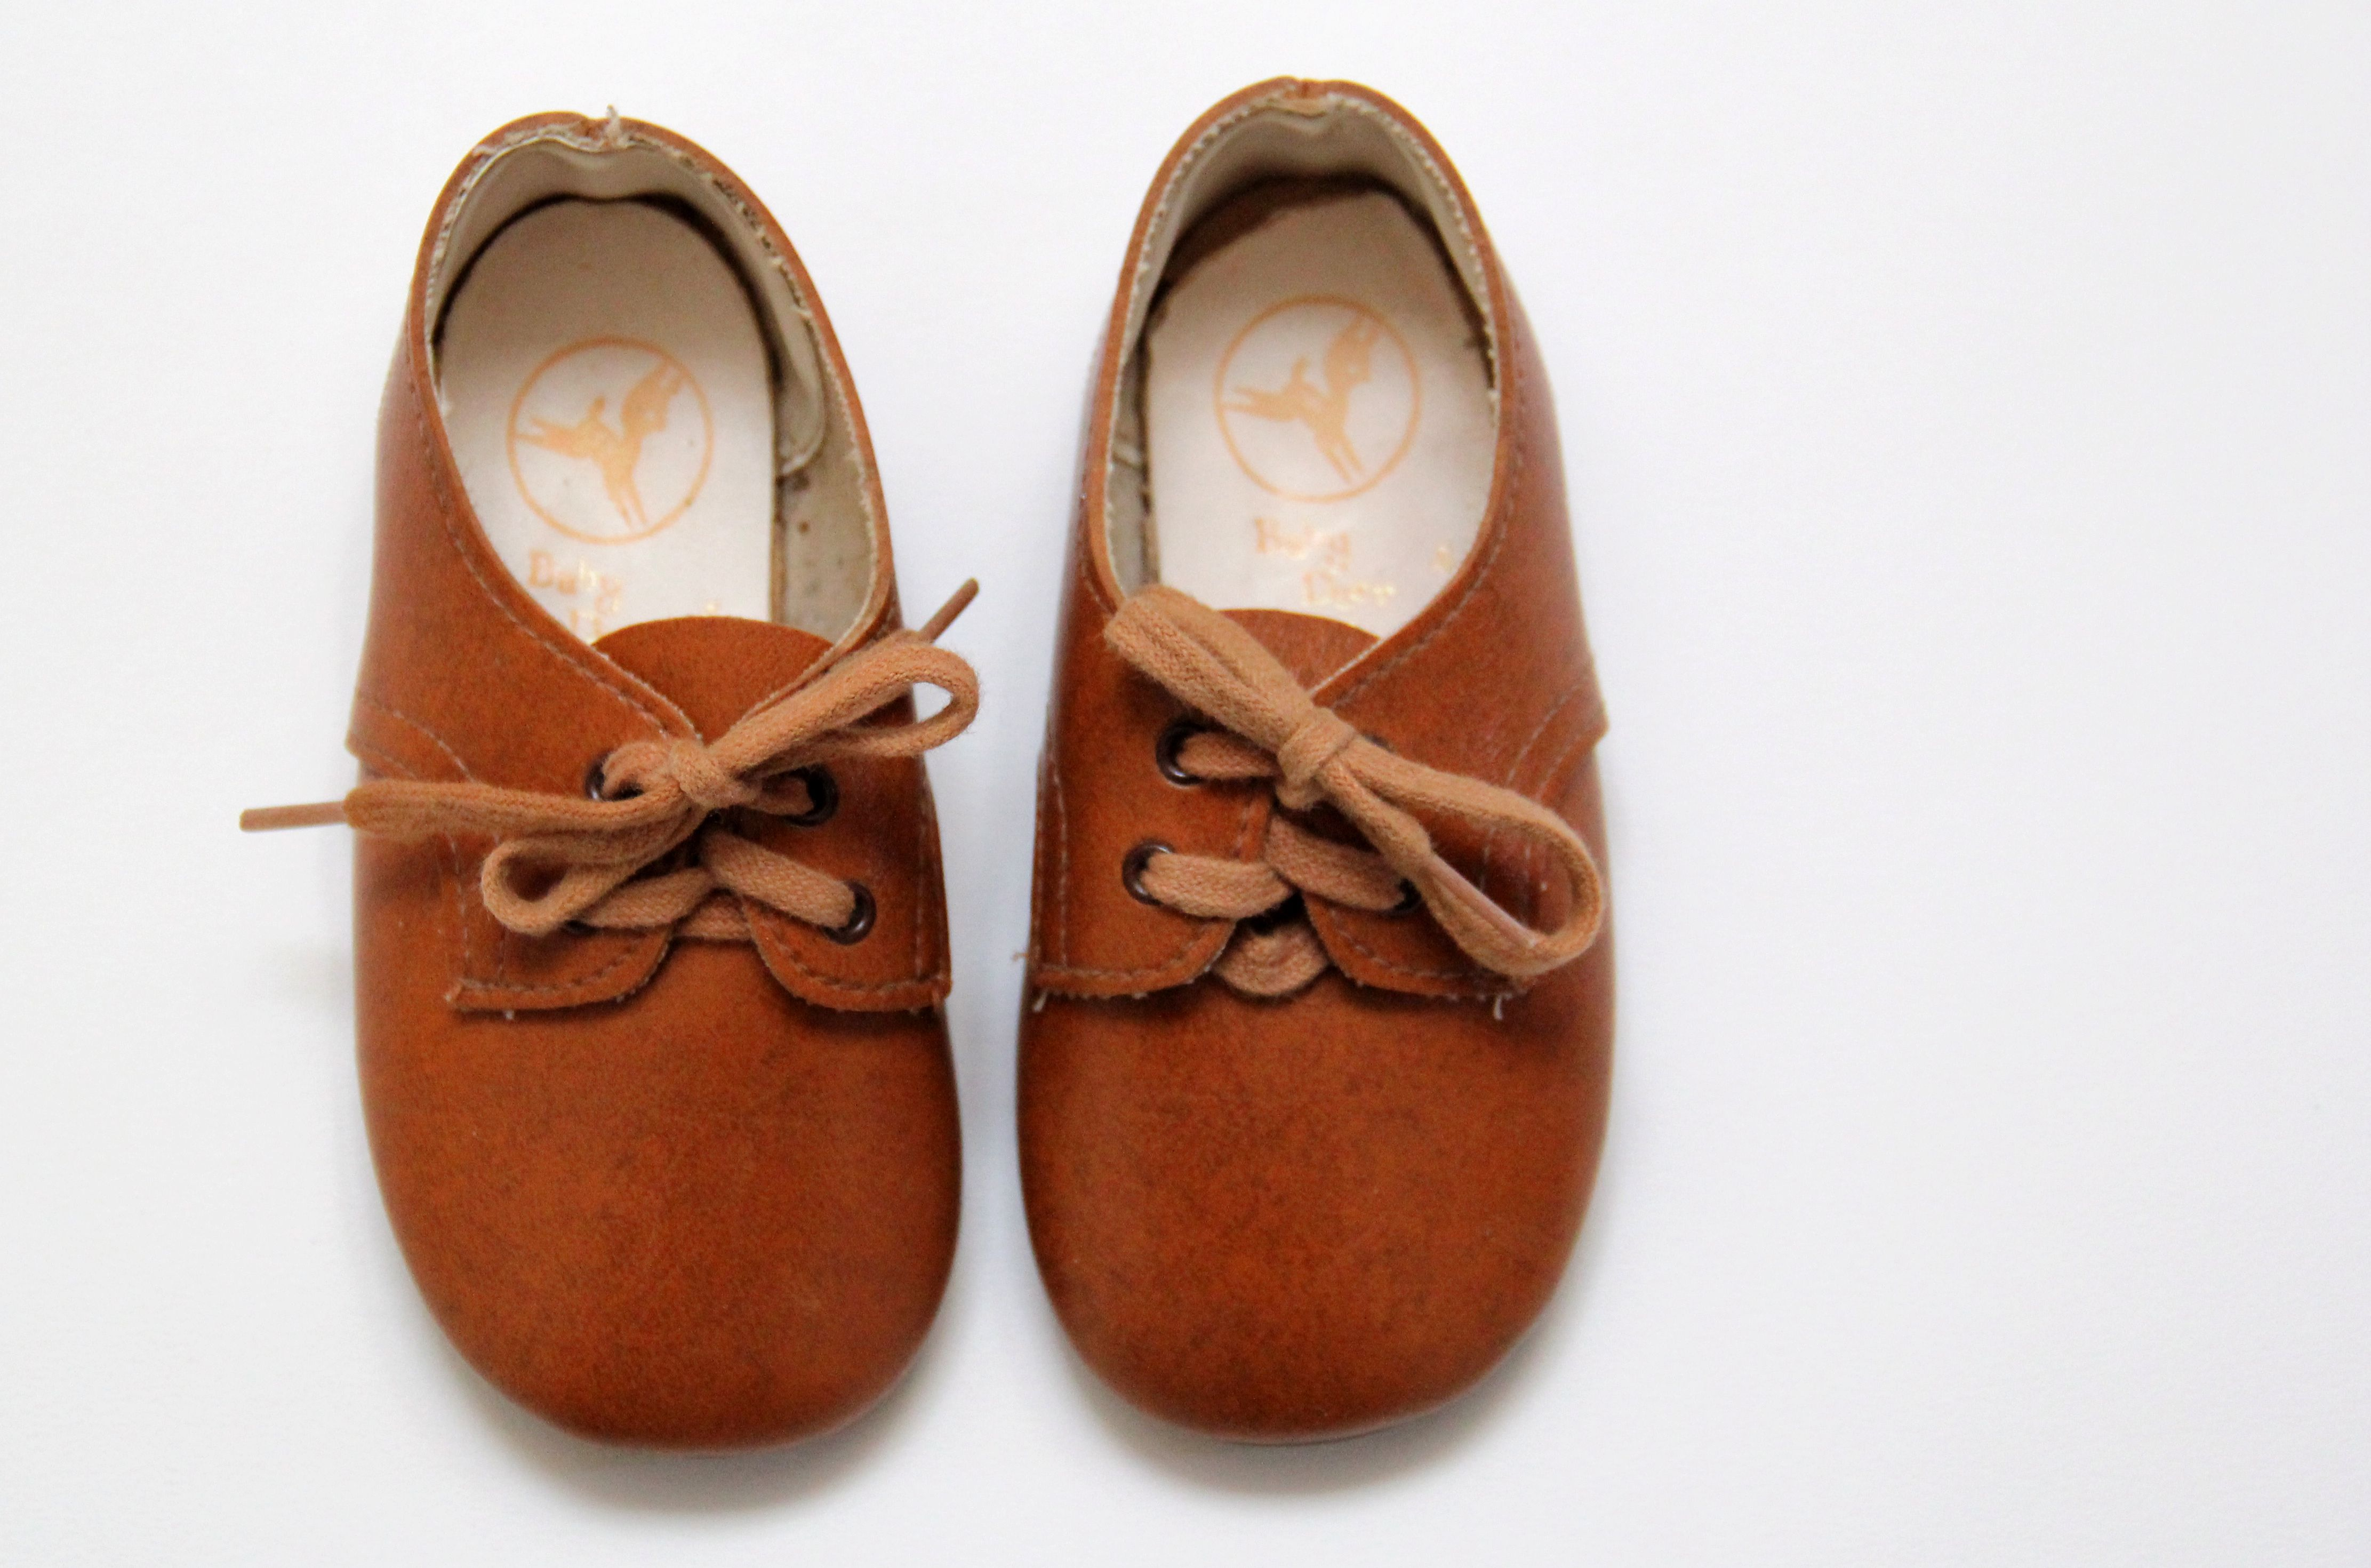 Vintage tan leather lace up baby shoes by Baby Deer